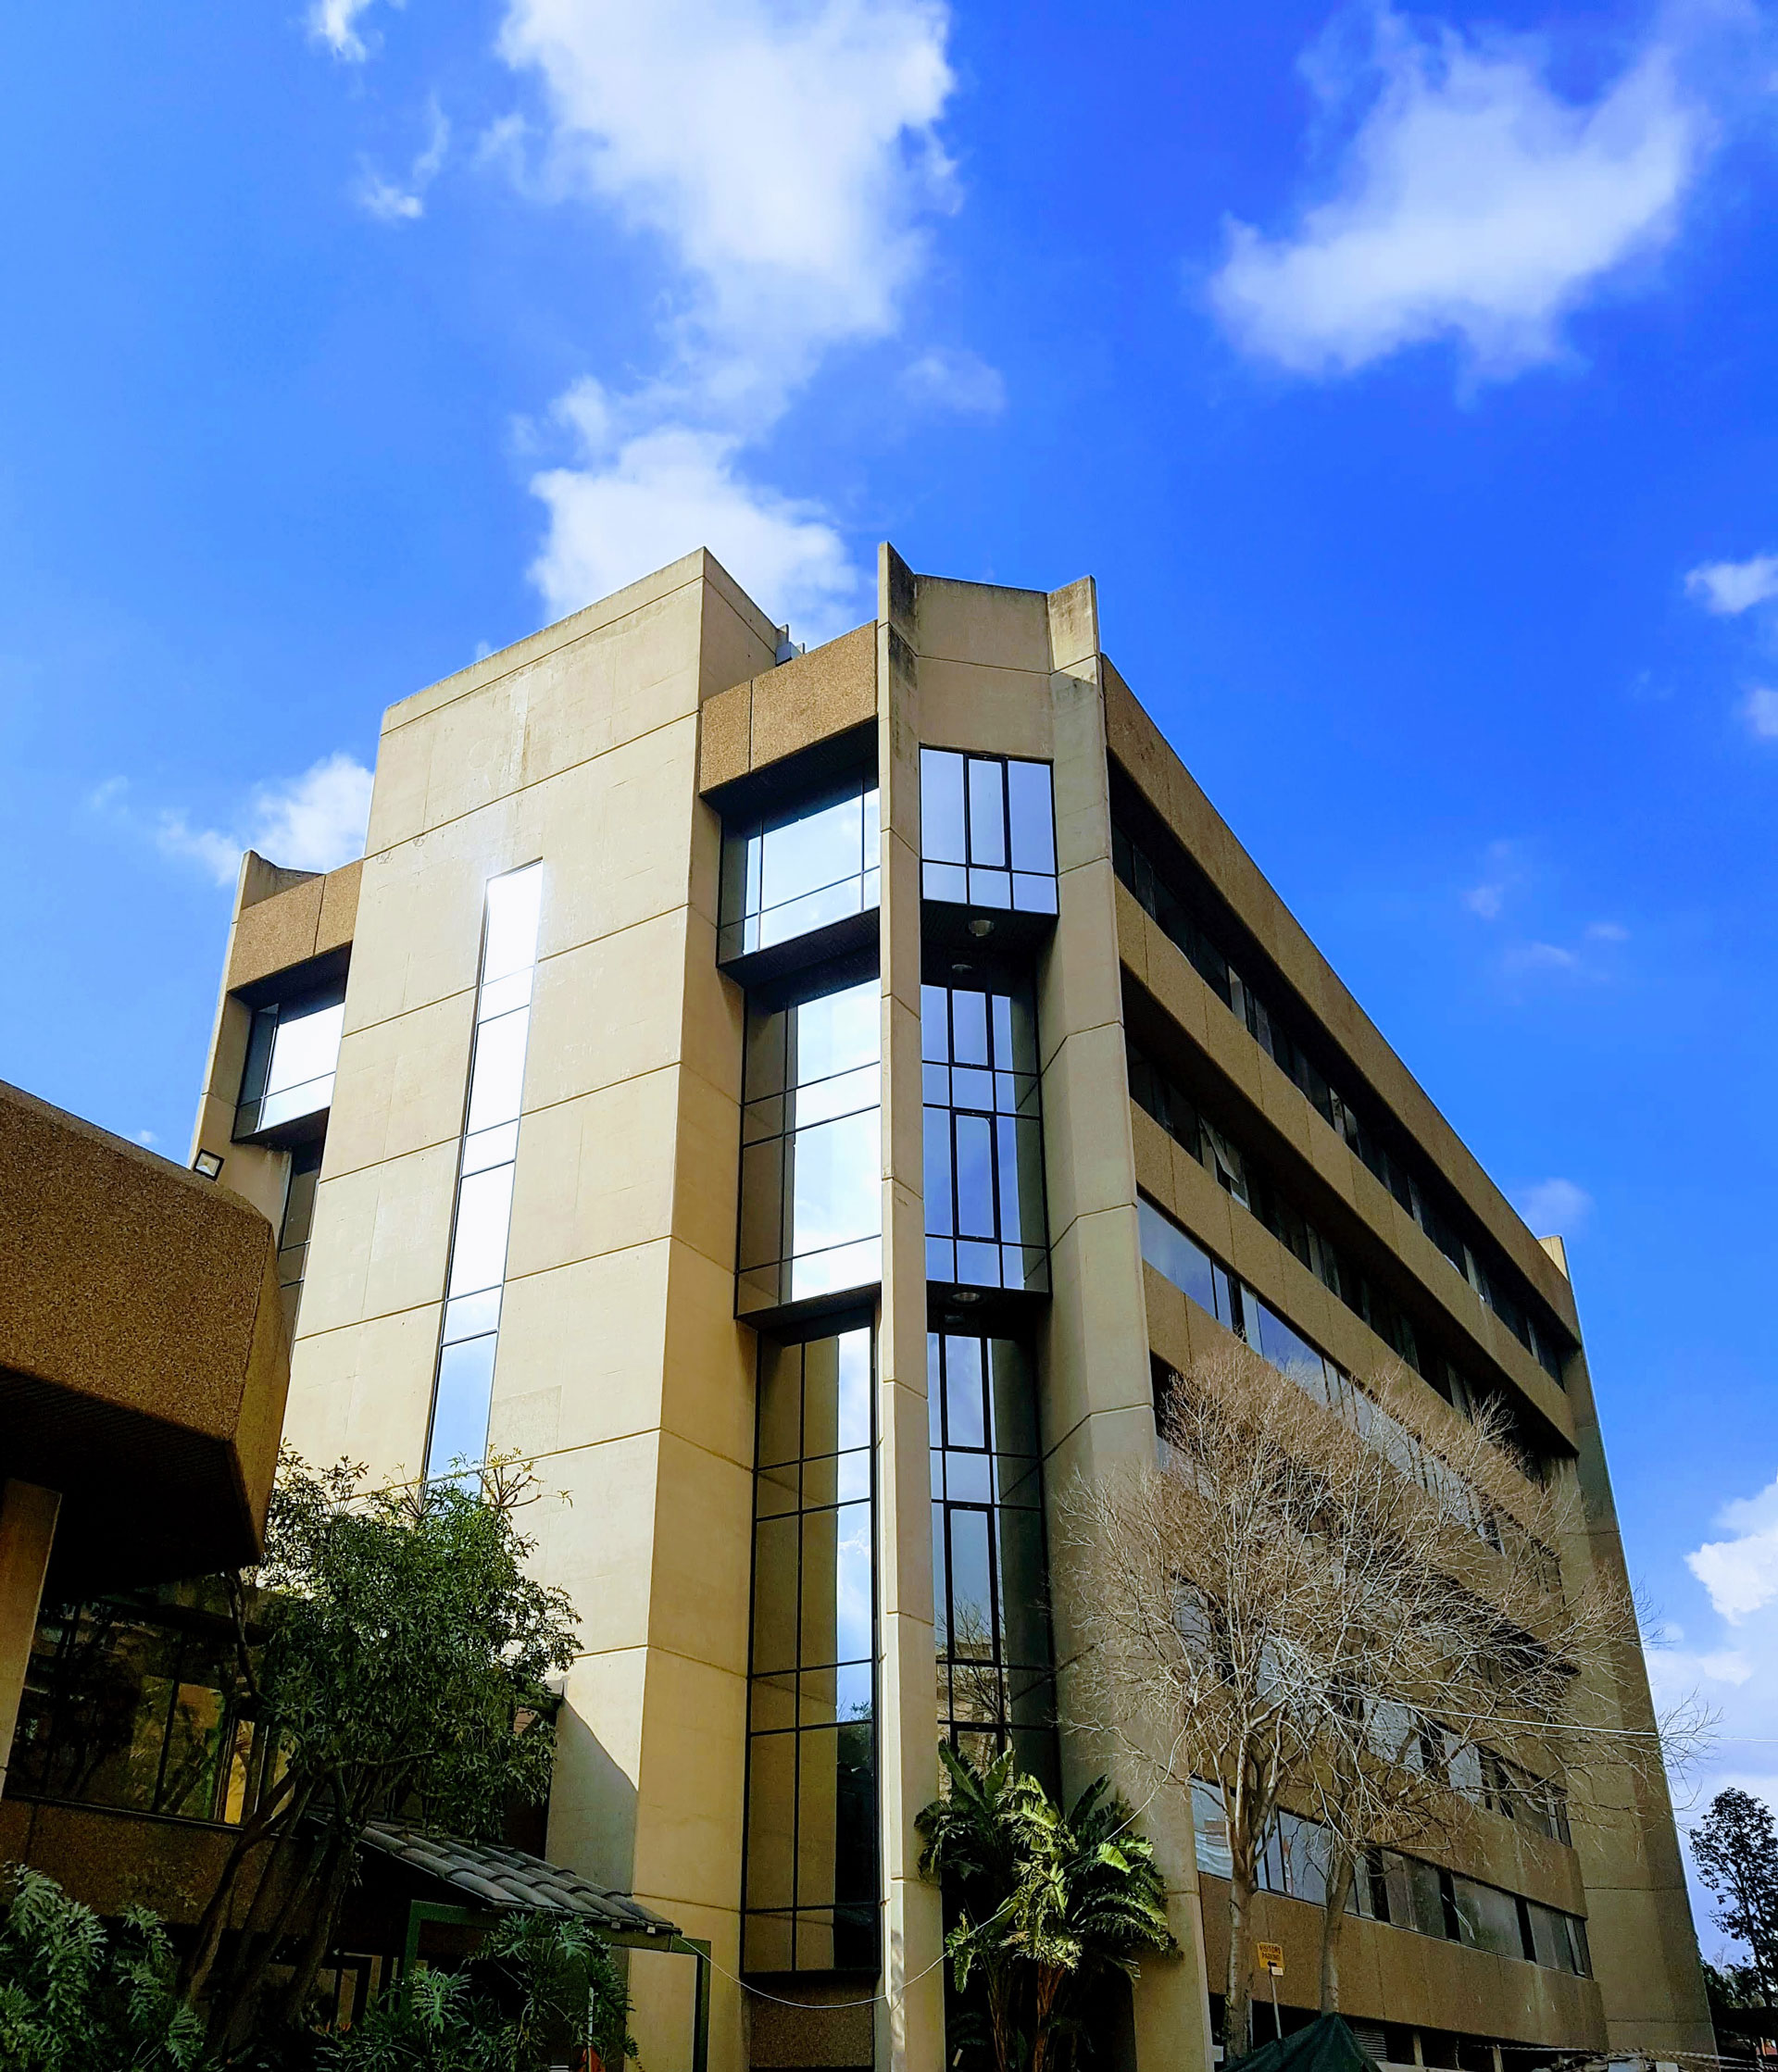 The Landmark Apartments: Apartments To Rent In Ferndale, Randburg